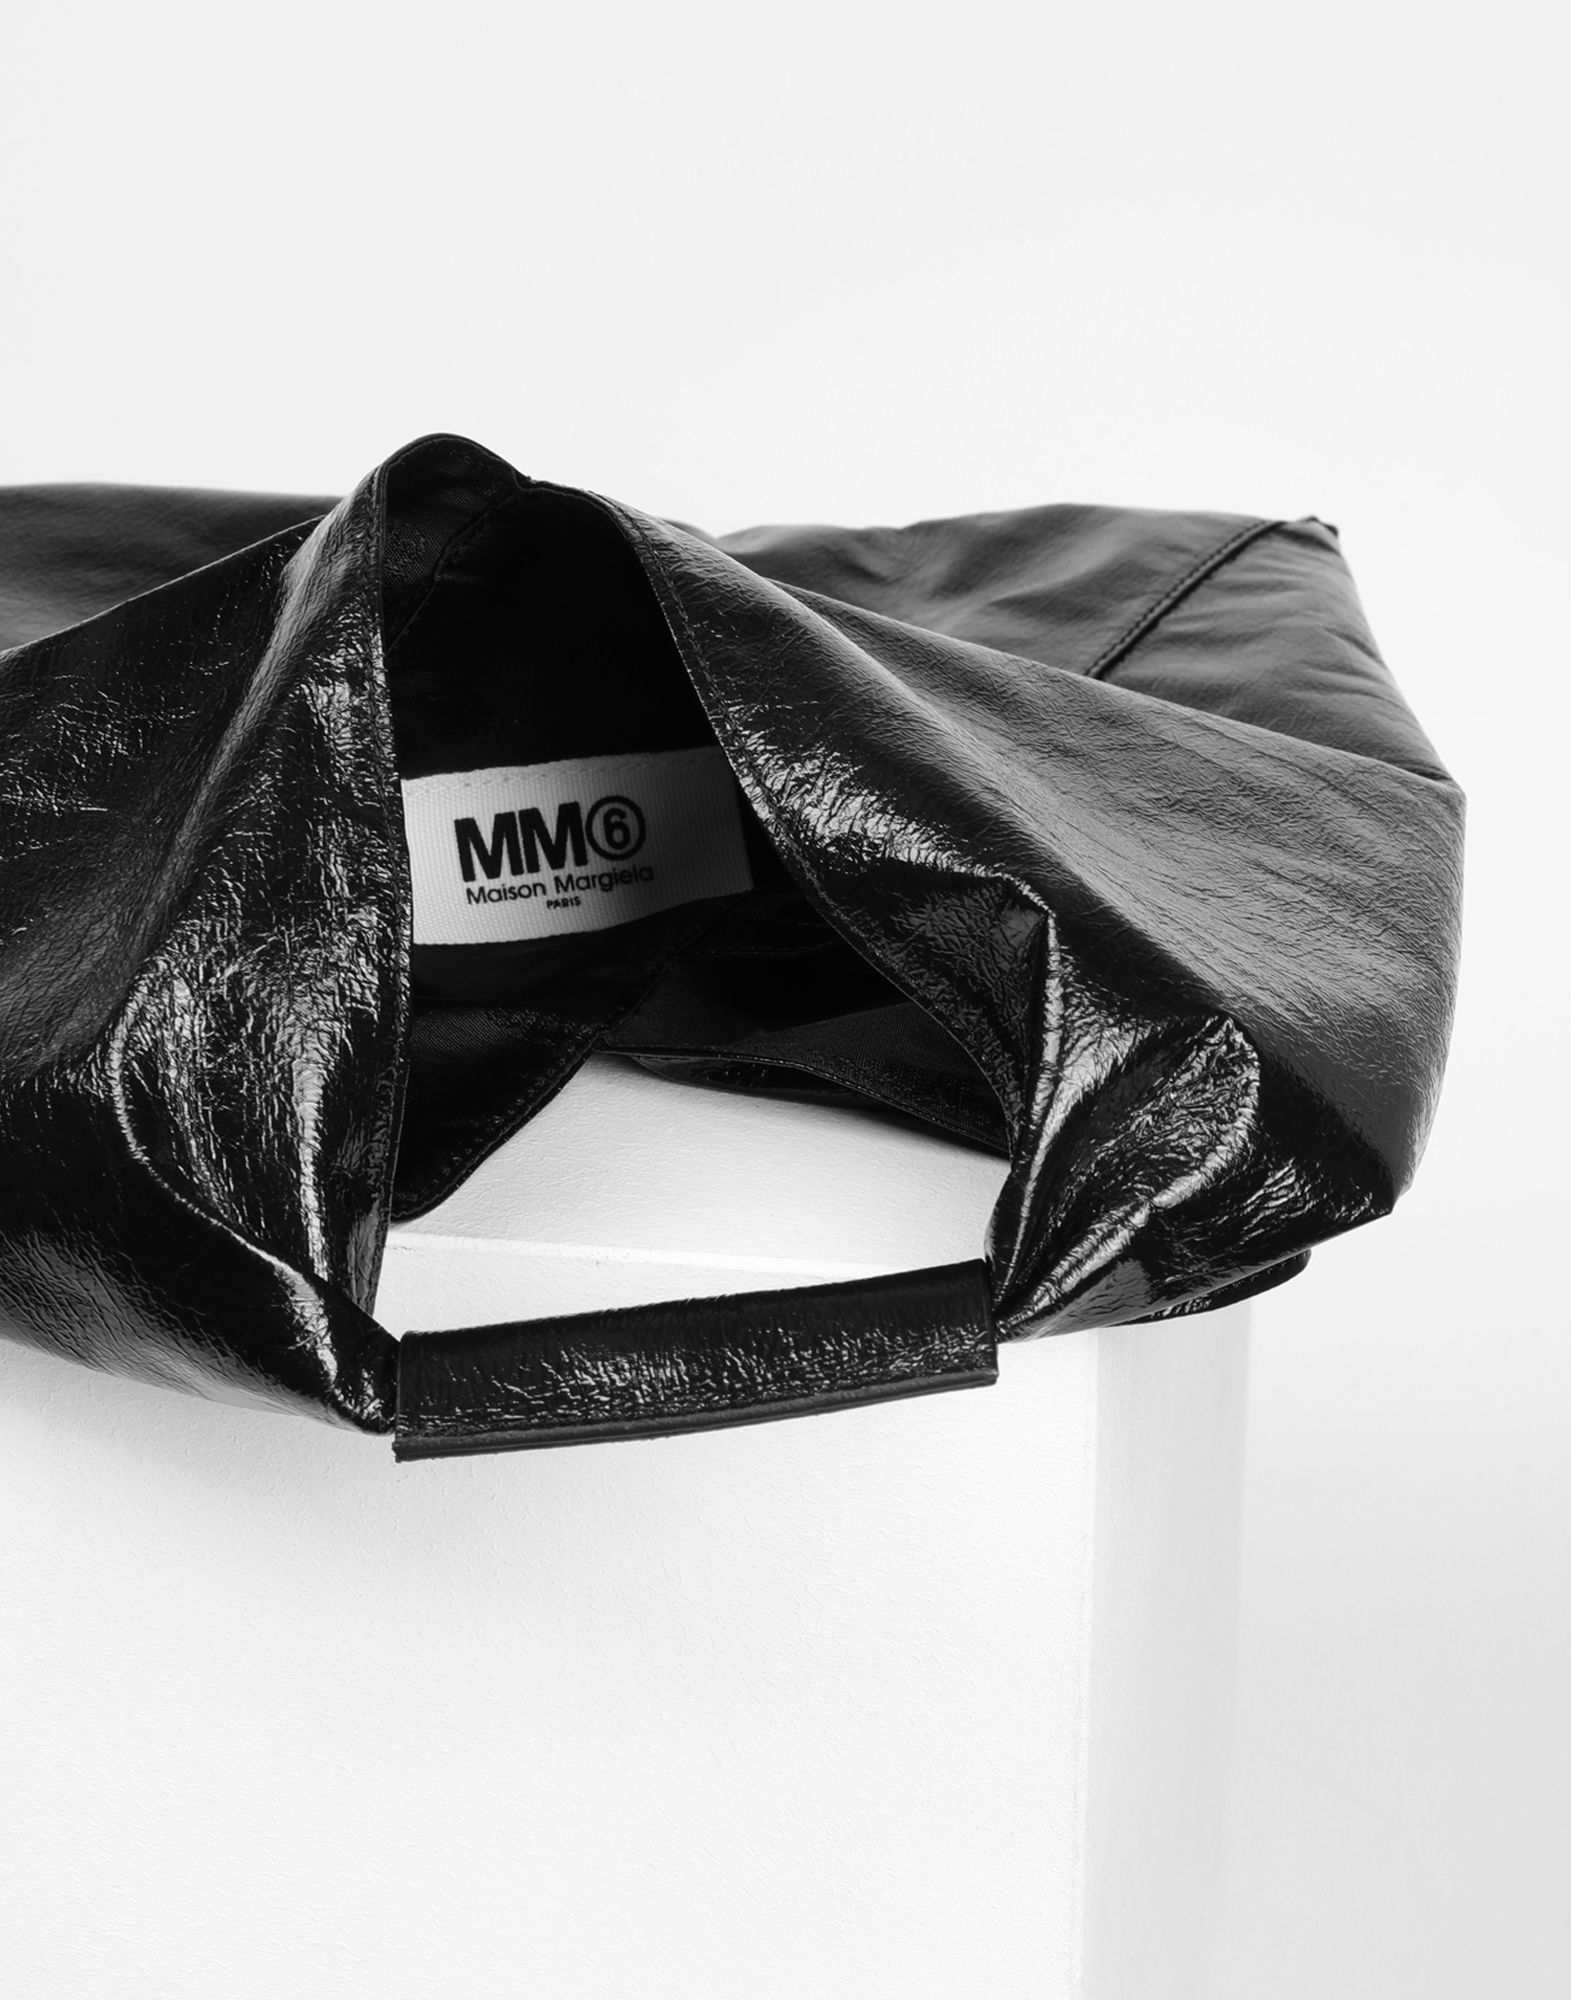 MM6 MAISON MARGIELA Japanese crinkled leather small bag Tote Woman d